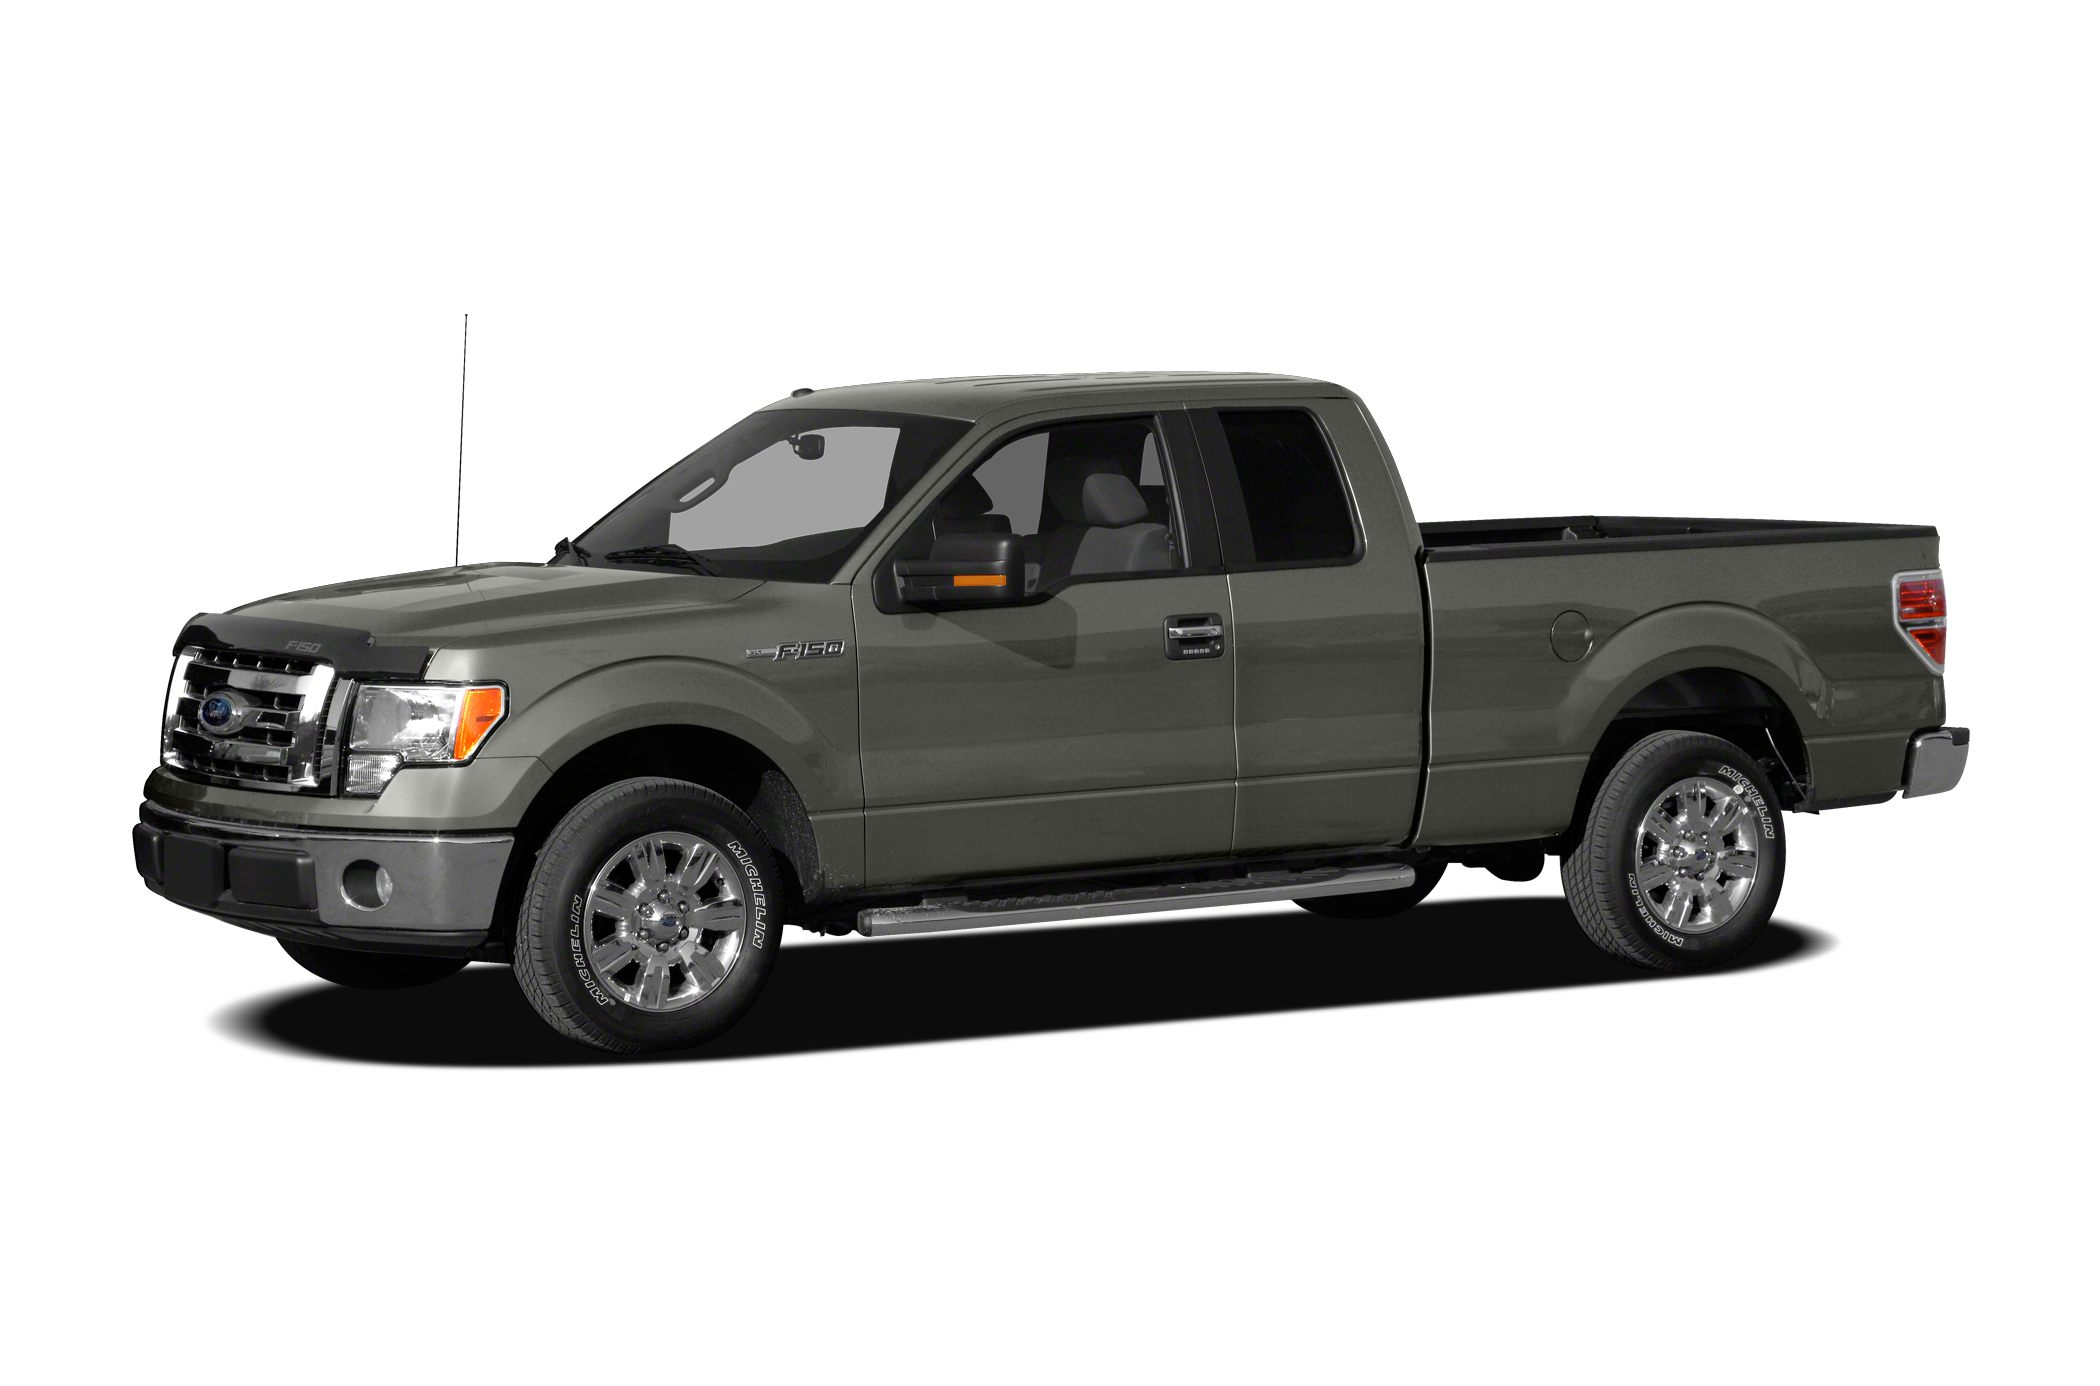 2012 Ford F150 Lariat Crew Cab Pickup for sale in Bainbridge for $29,500 with 76,396 miles.